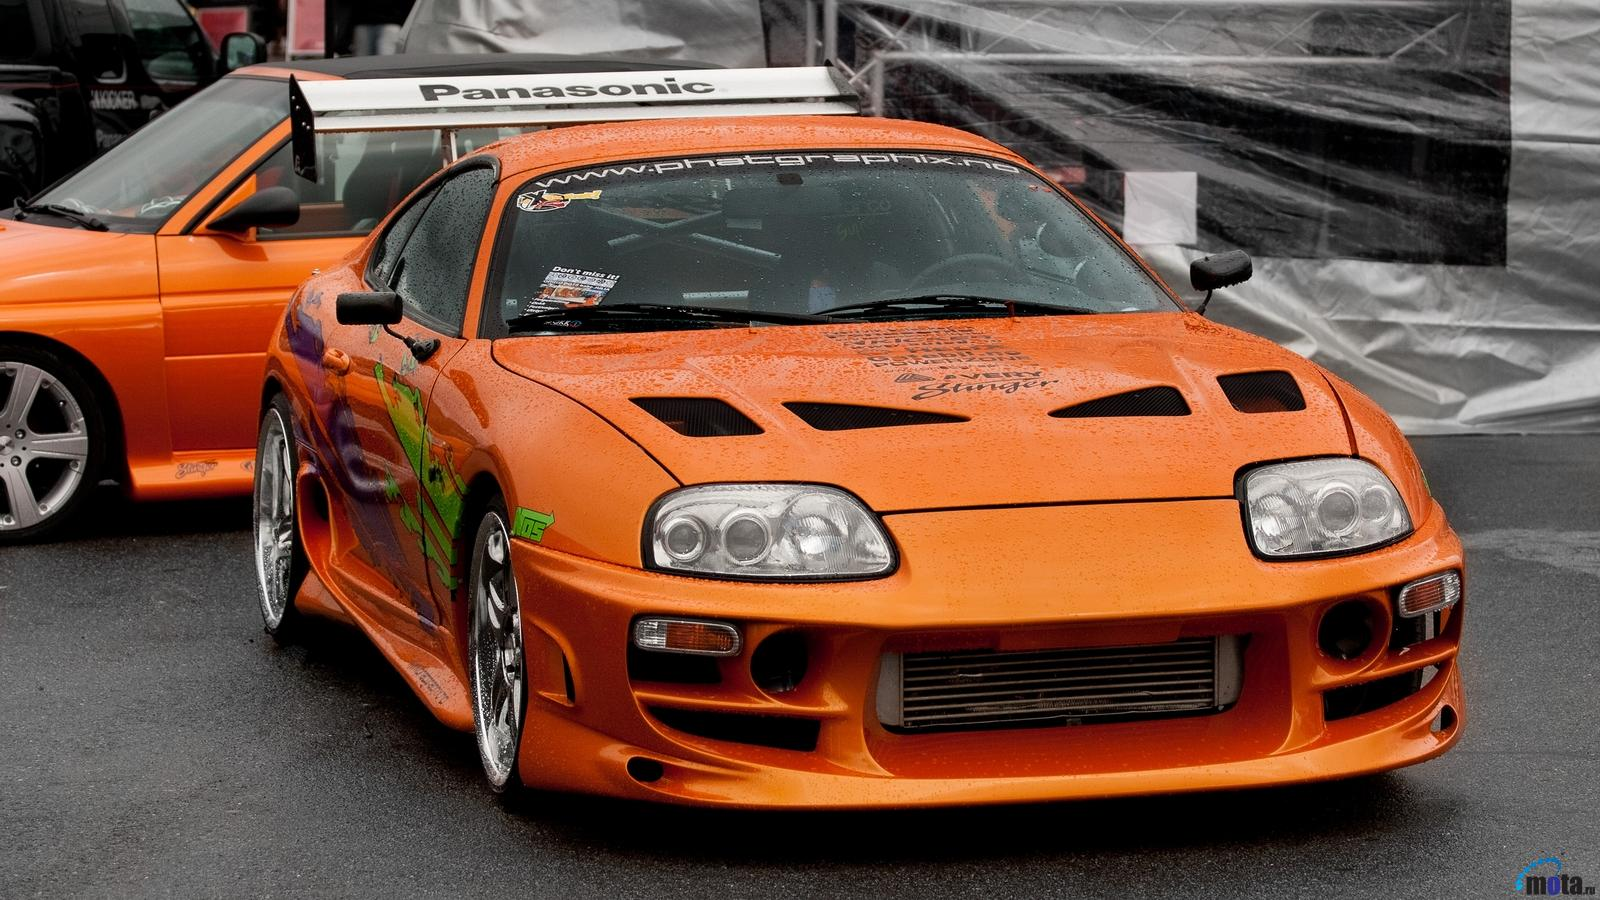 Wallpaper Toyota Supra after rain 1600 x 900 widescreen Desktop 1600x900